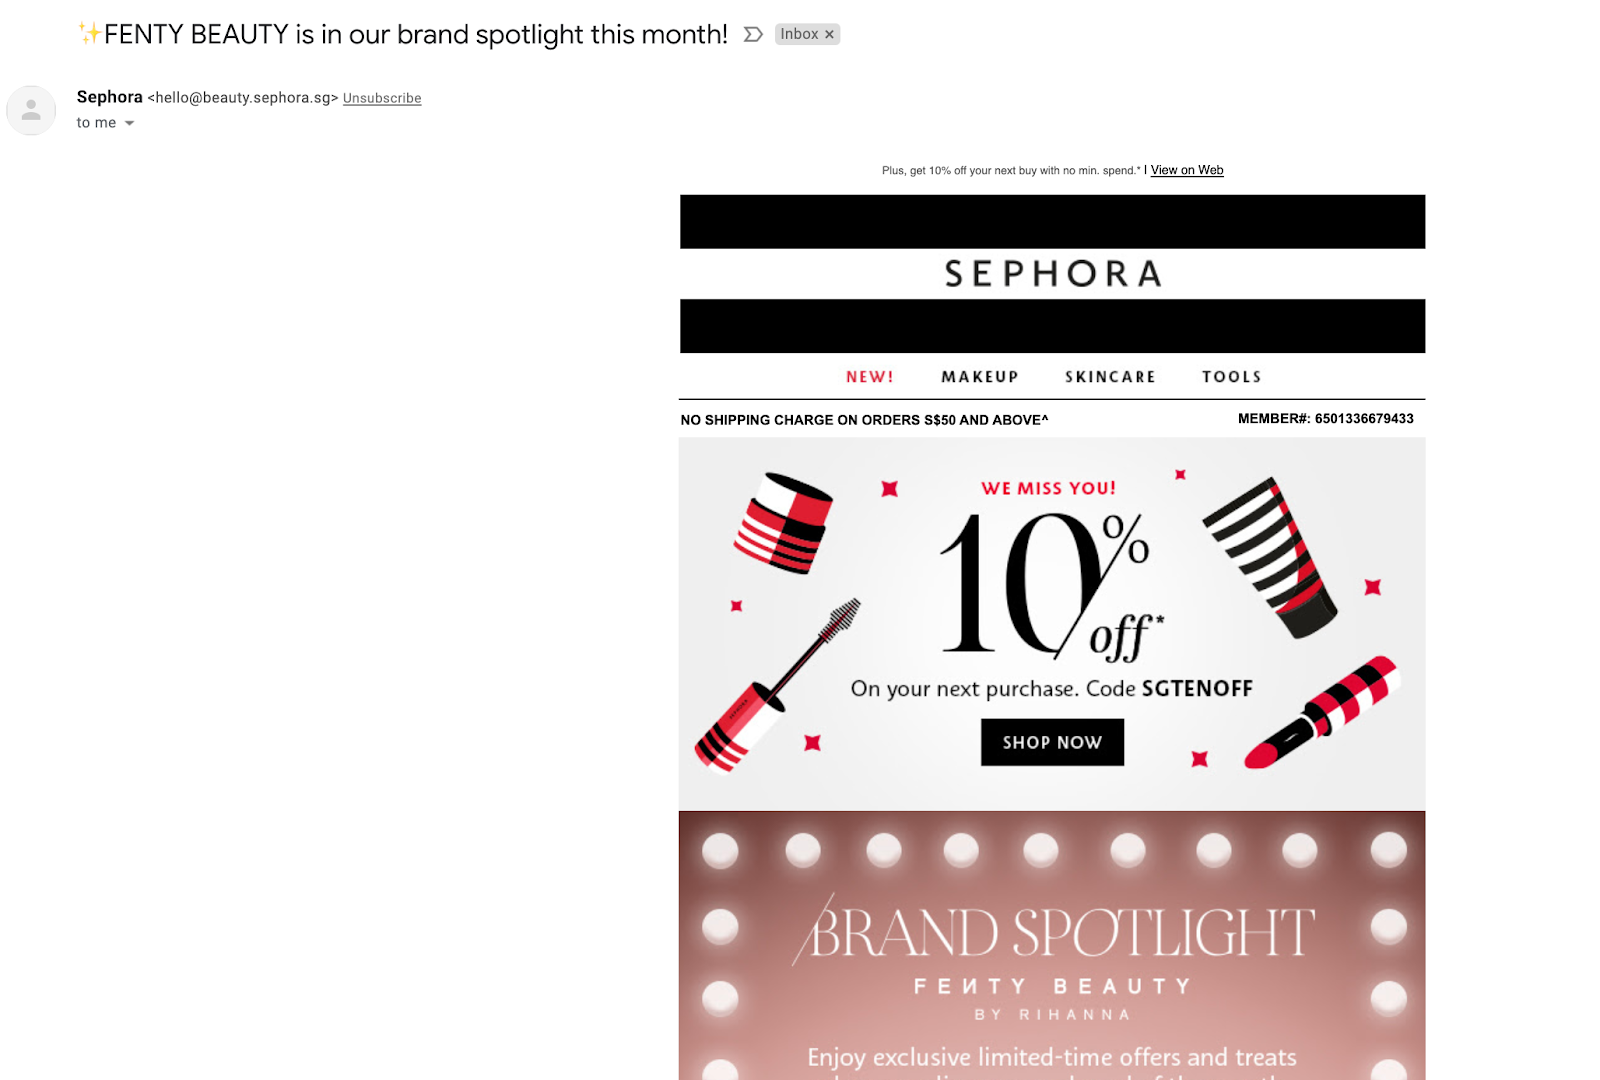 Email marketing campaign example by Sephora to promote their brand